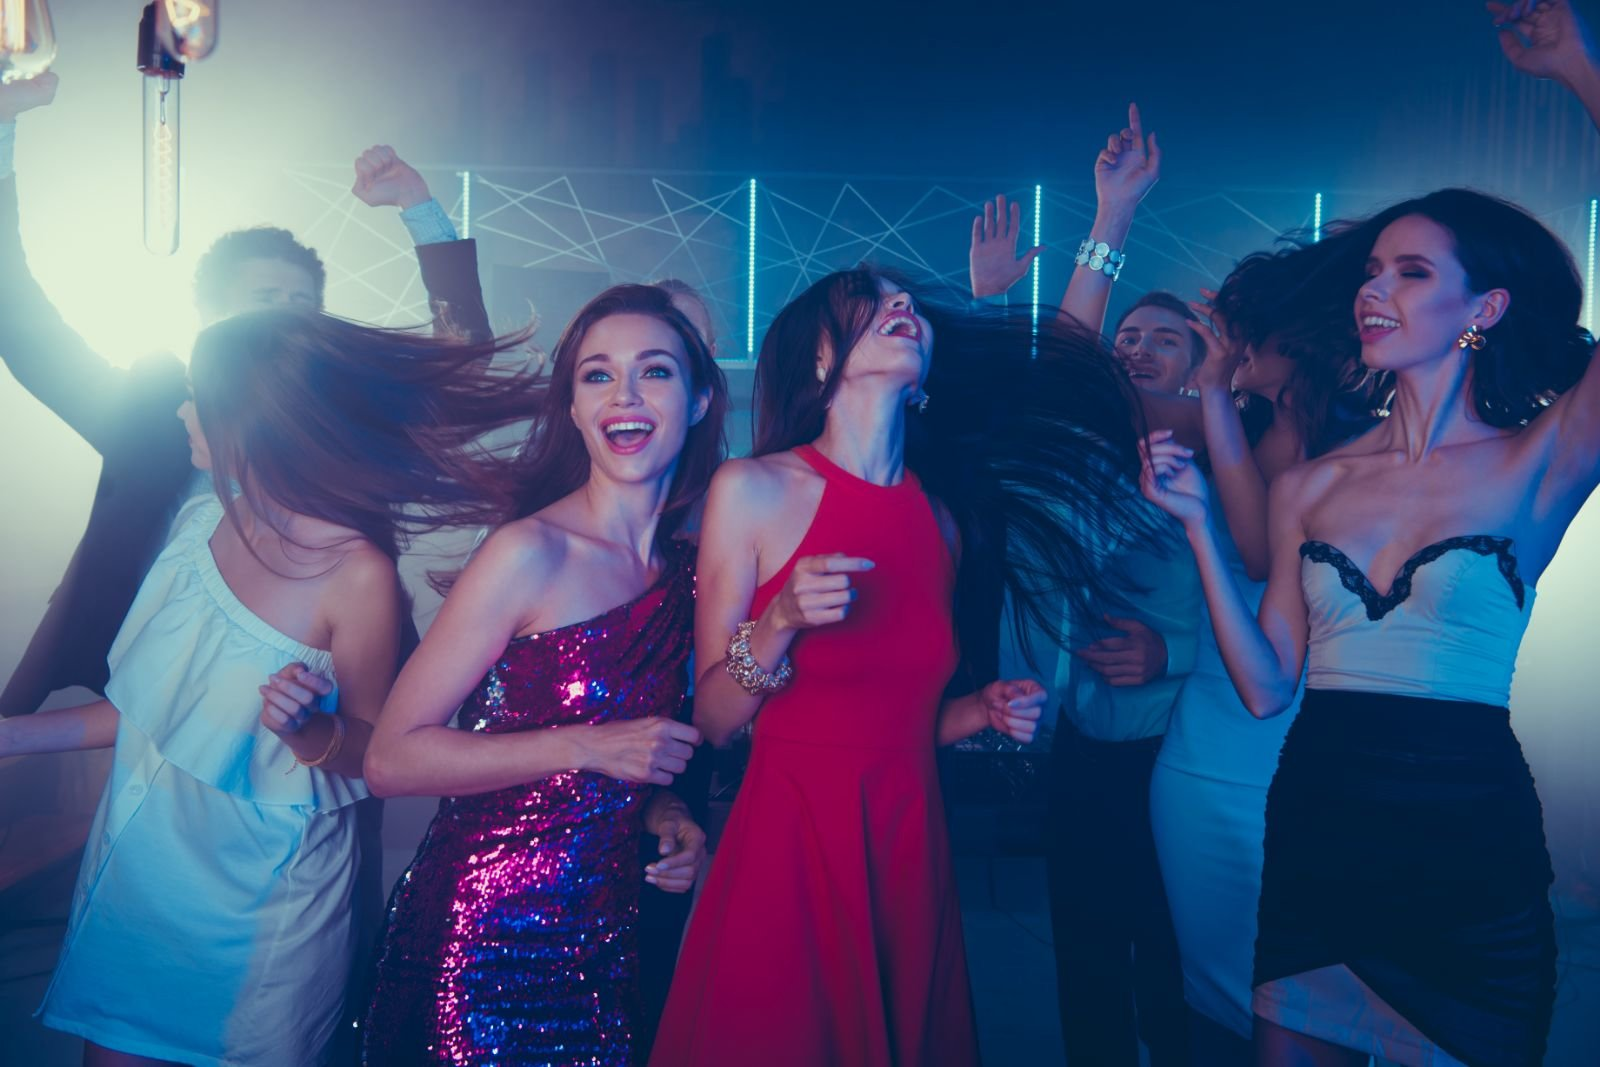 Where to Find the Best NYC Night Clubs